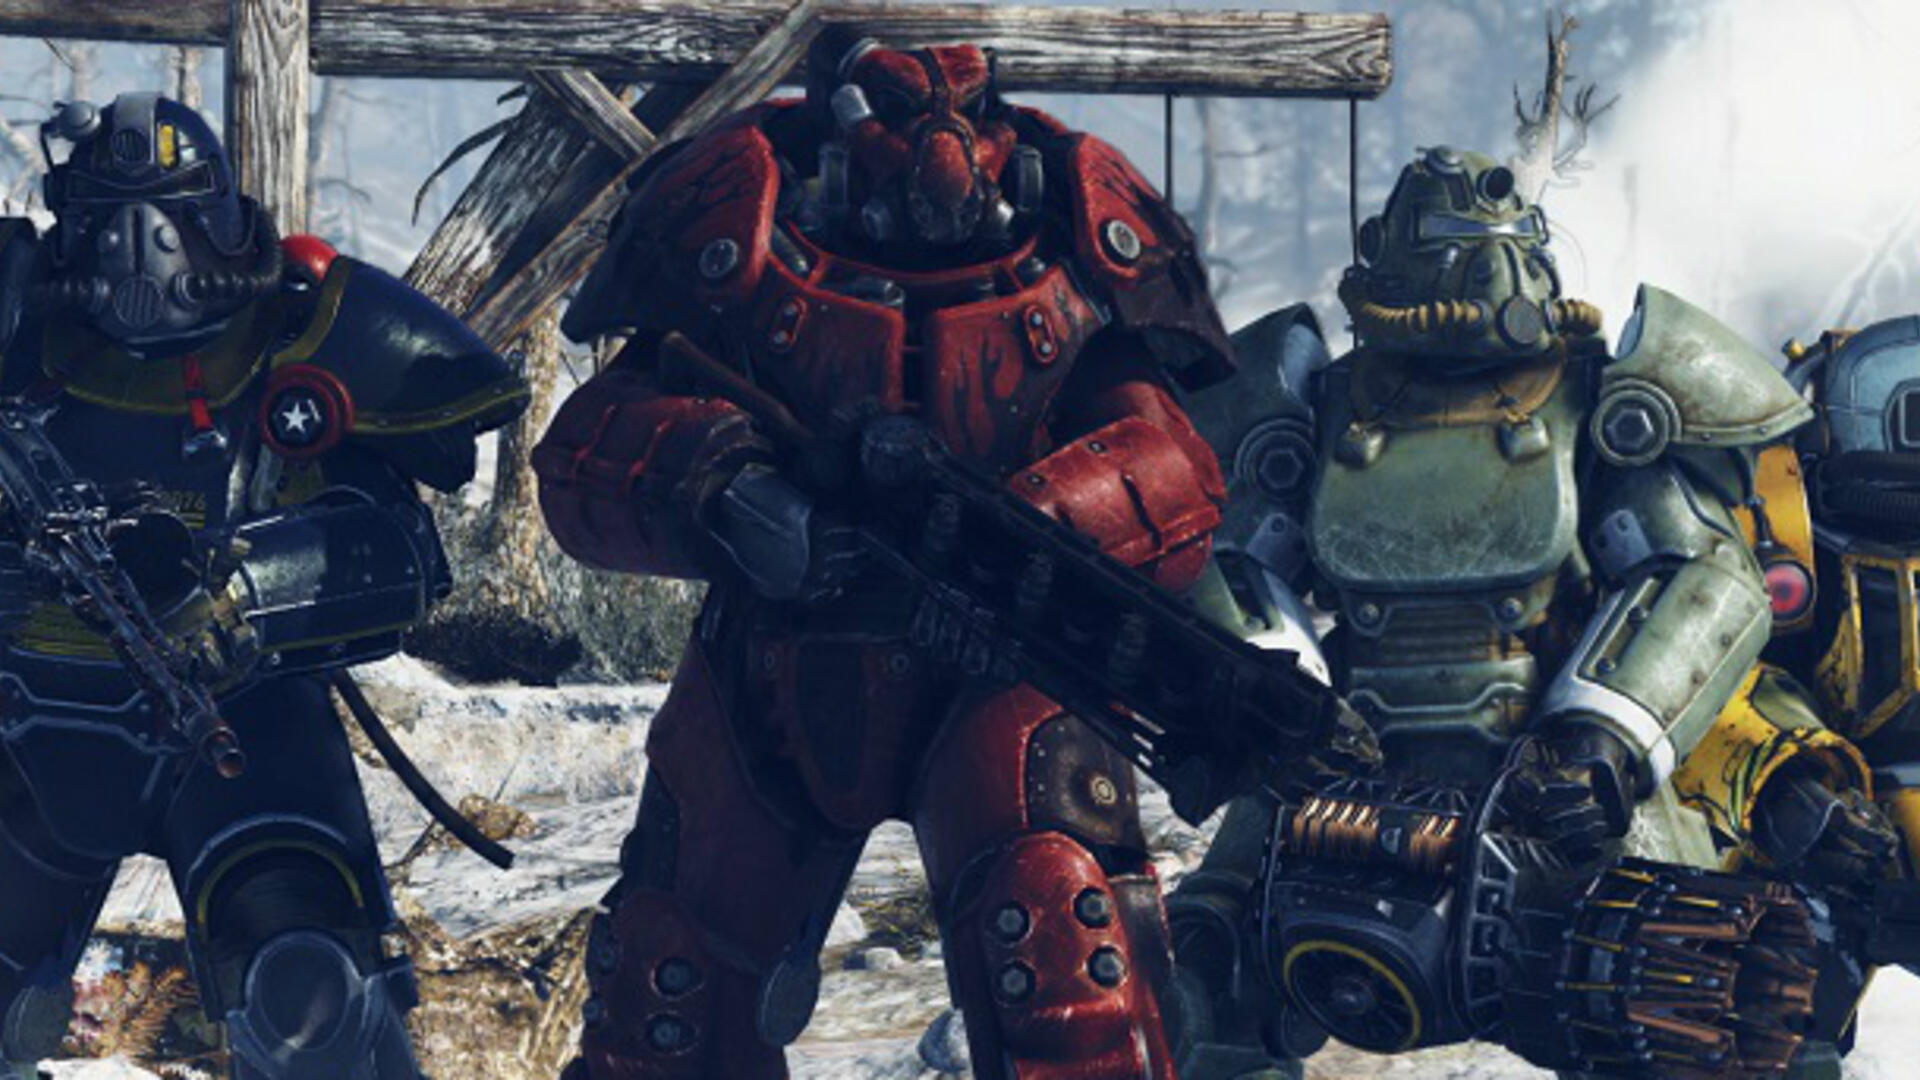 Fallout 76 Makes Being Encumbered Much Less Annoying